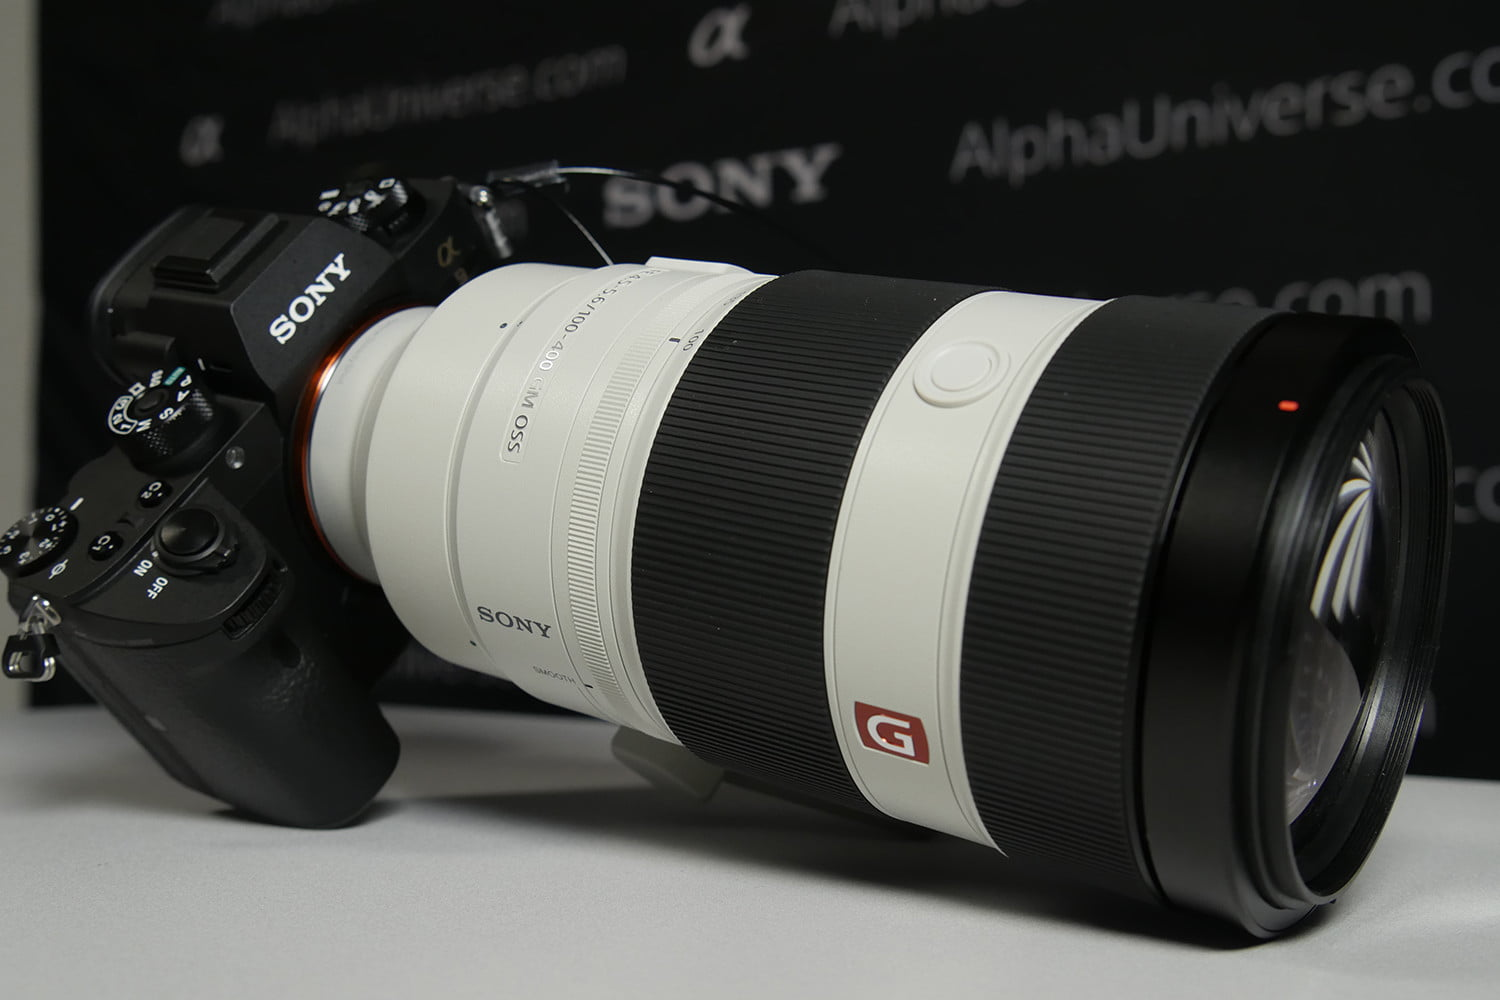 sony a9 full frame camera announced hands on 1